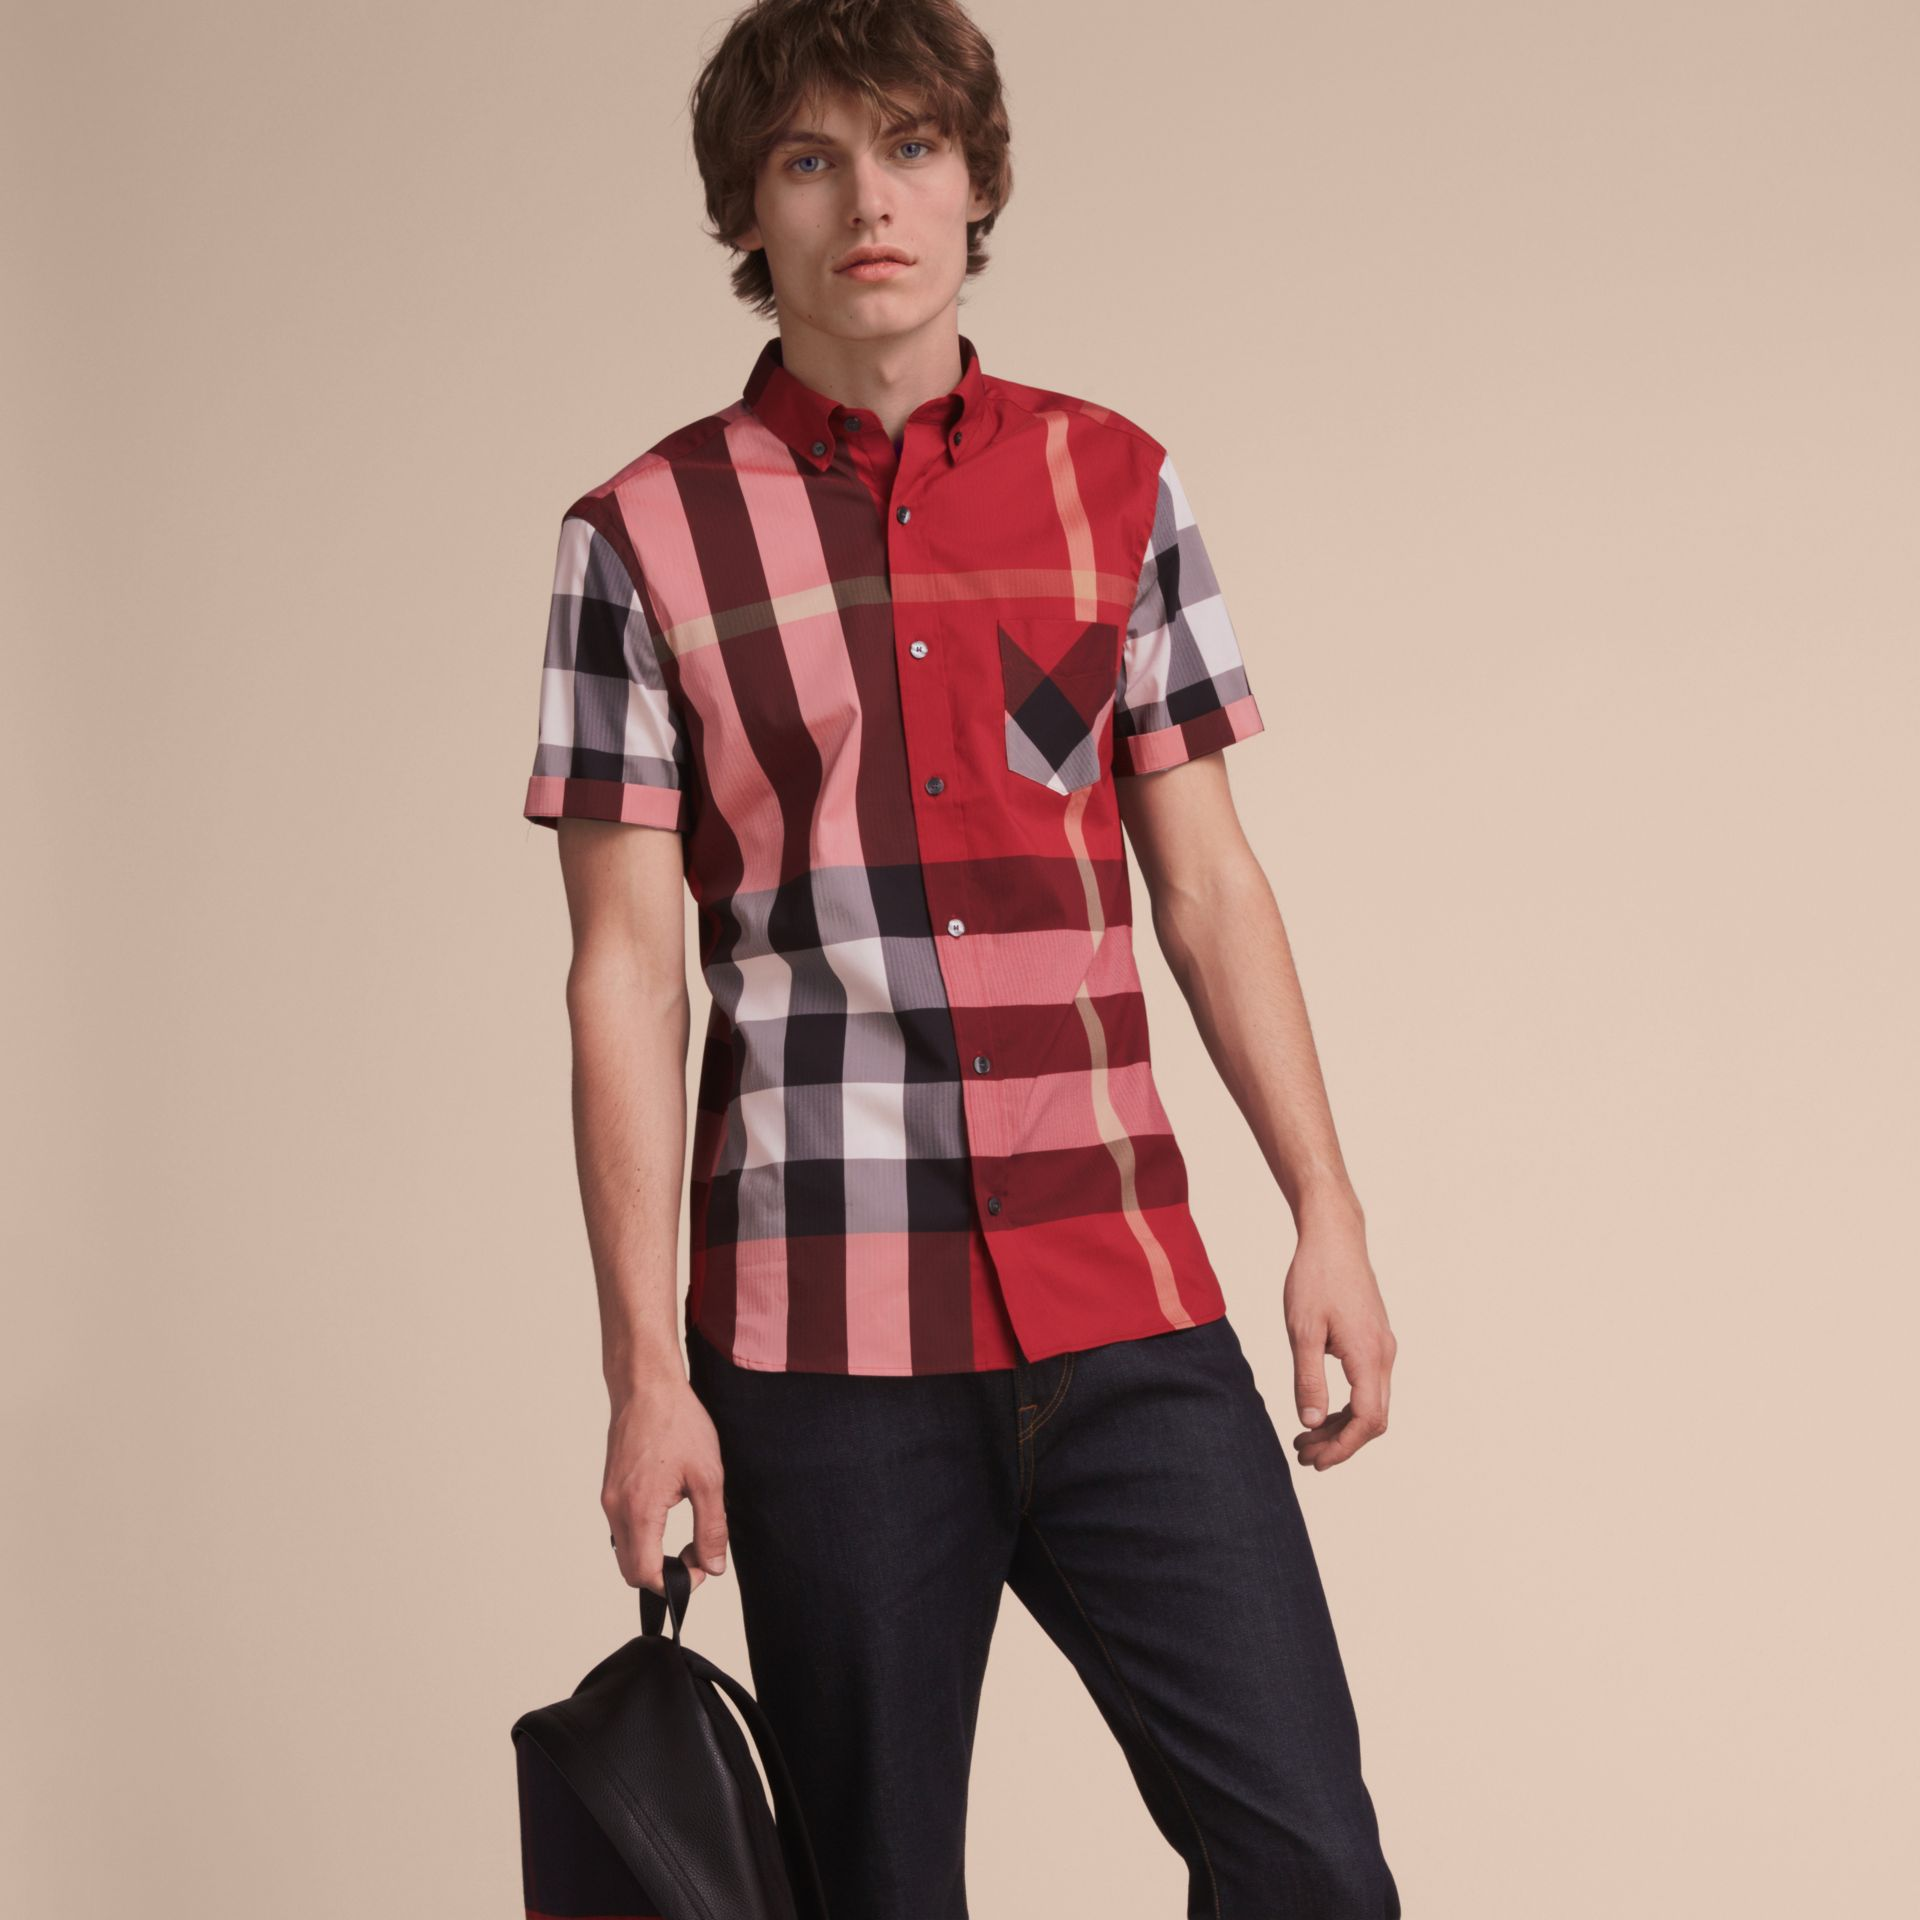 Short-sleeve Check Stretch Cotton Blend Shirt in Parade Red - Men | Burberry Canada - gallery image 6